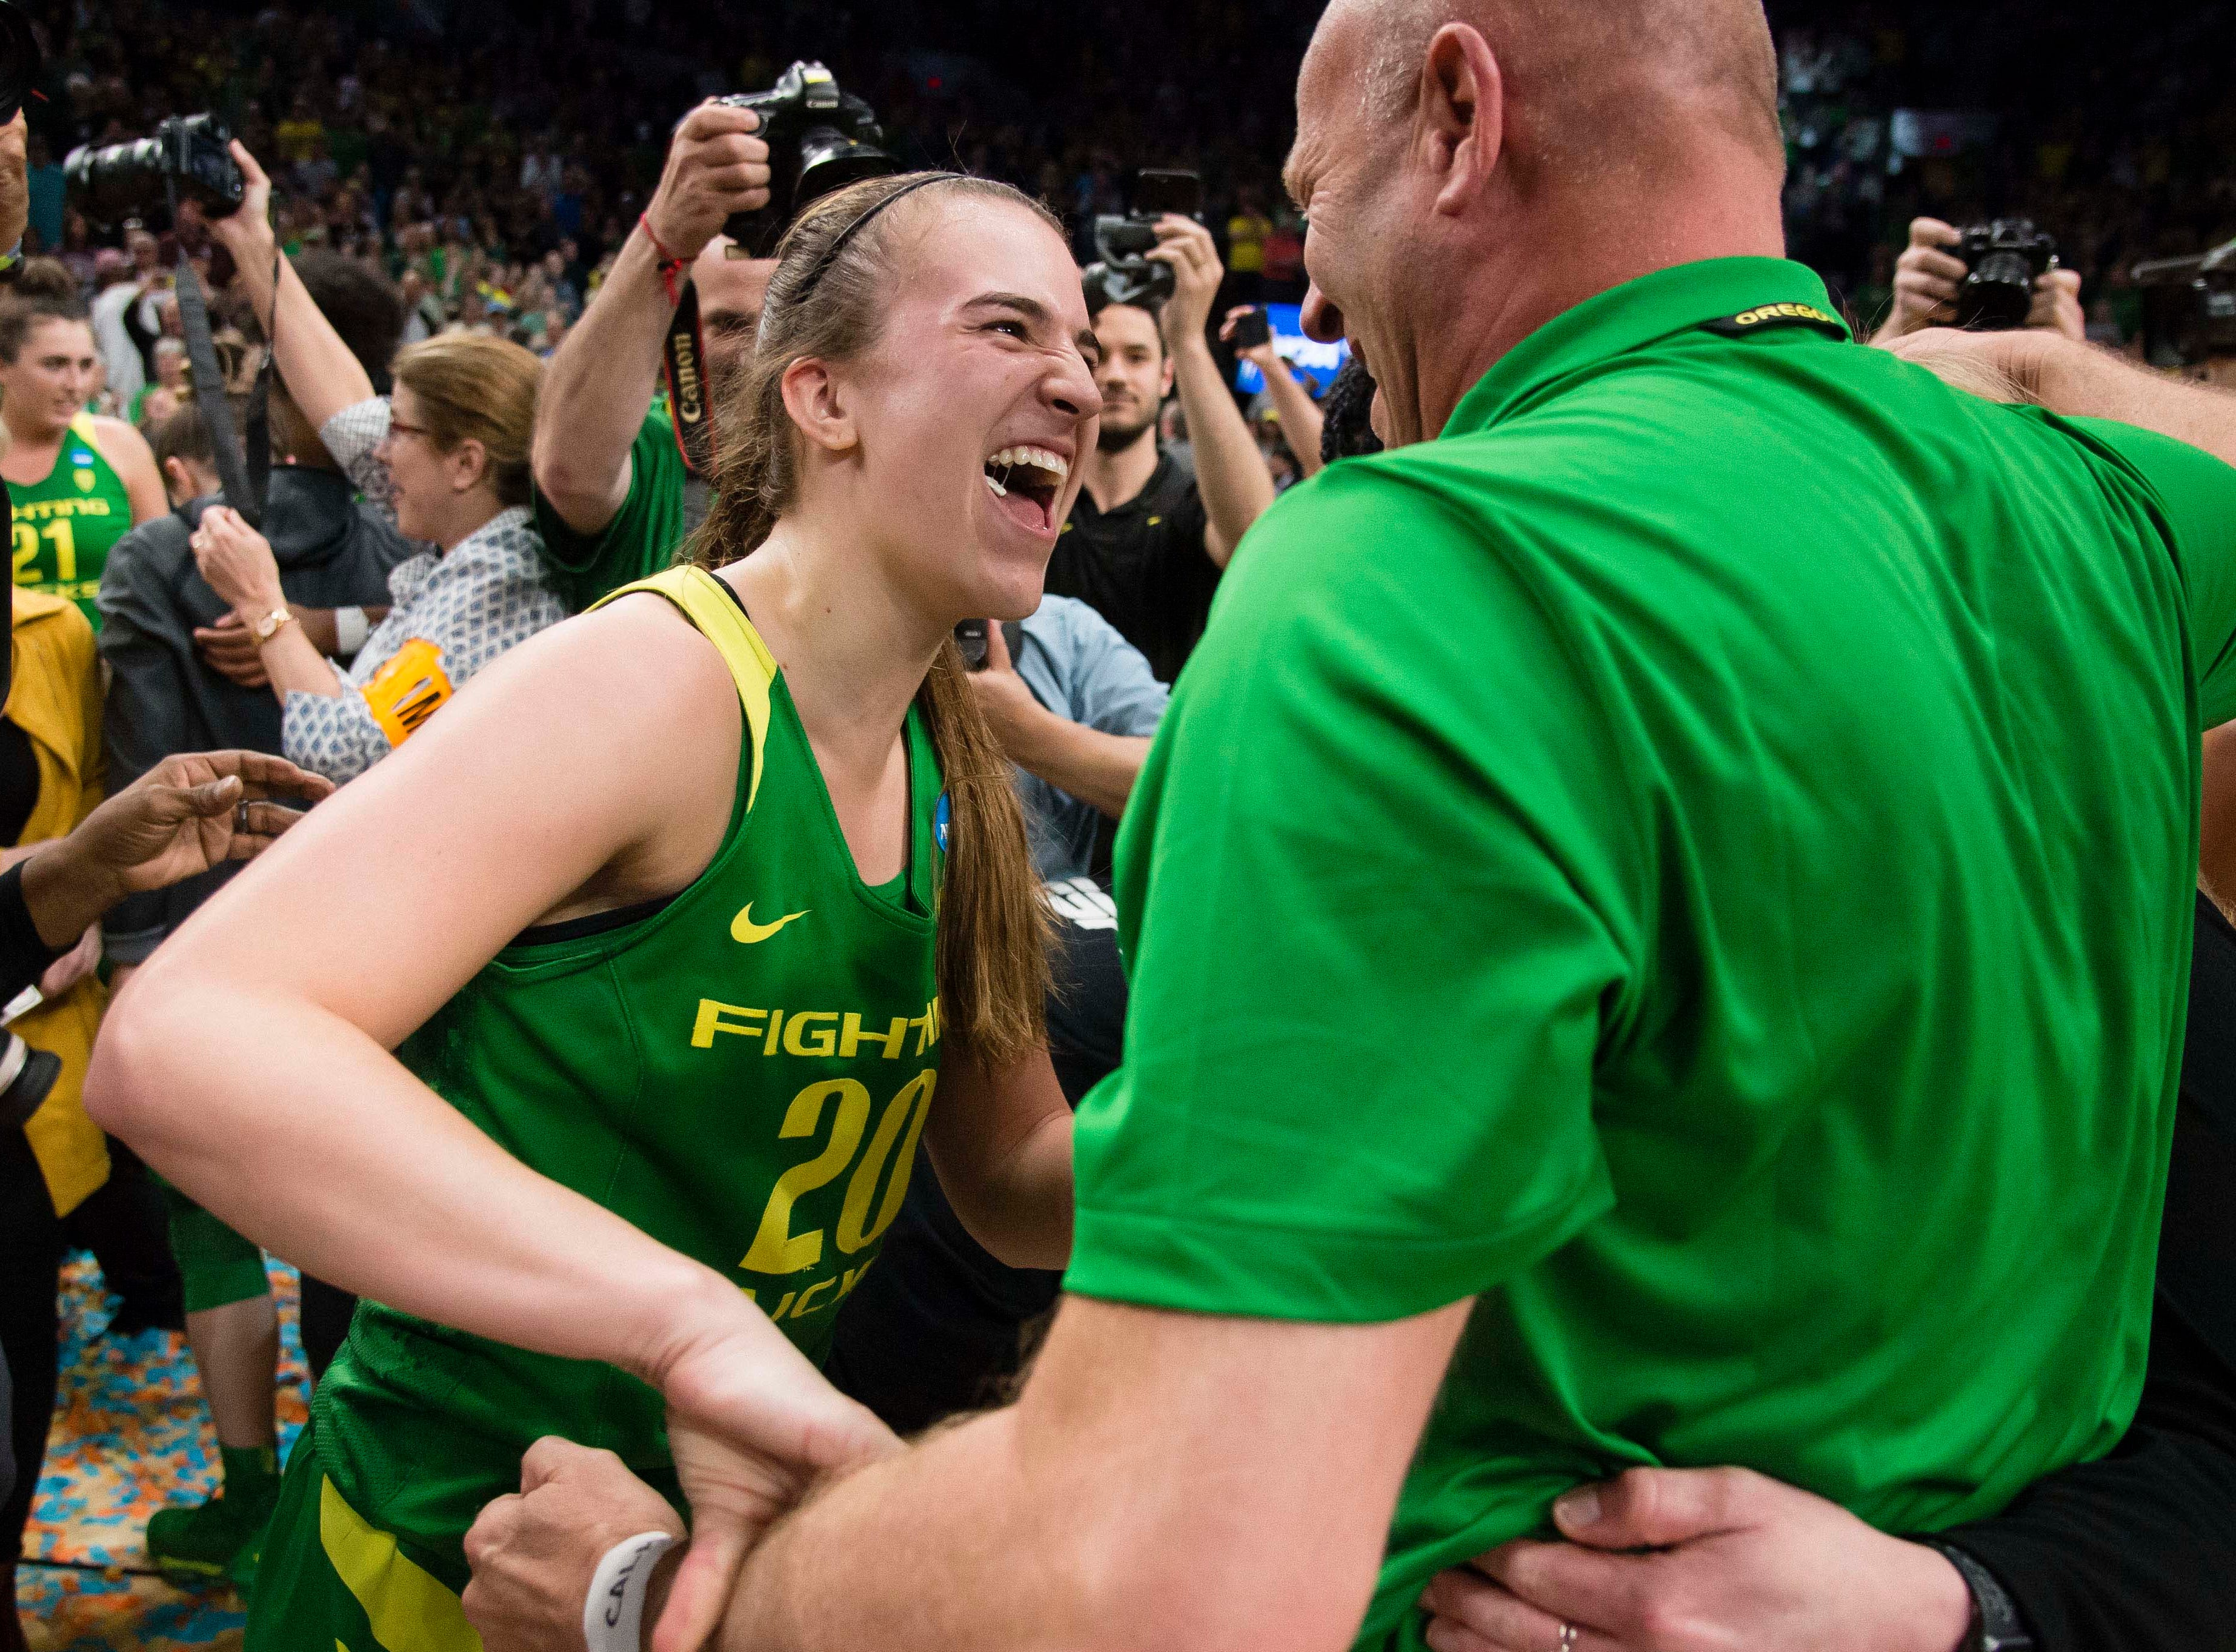 Oregon Ducks guard Sabrina Ionescu (20) celebrates with head coach Kelly Graves after a game against the Mississippi State Bulldogs in the championship game of the Portland regional in the women's 2019 NCAA Tournament at Moda Center. The Oregon Ducks beat the Mississippi State Bulldogs 88-84.